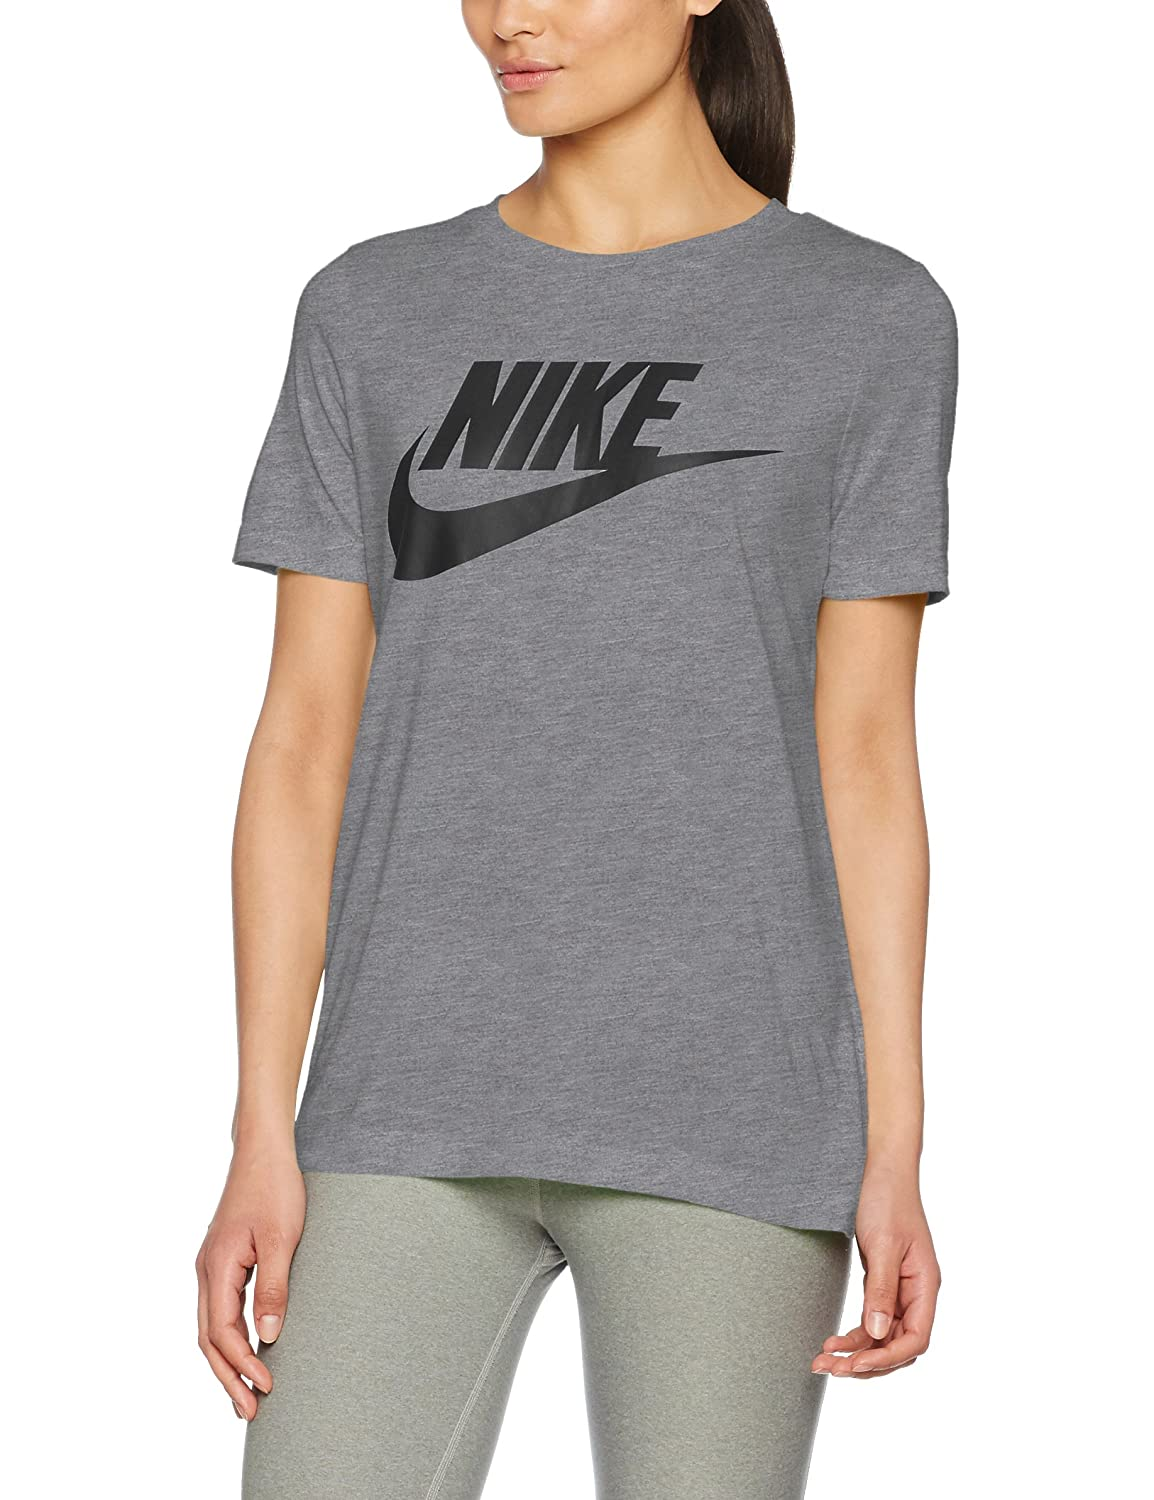 Nike Sportswear Essential Women's Logo Short Sleeve Top B01FVOSC22 X-Large|Carbon Heather/Anthracite